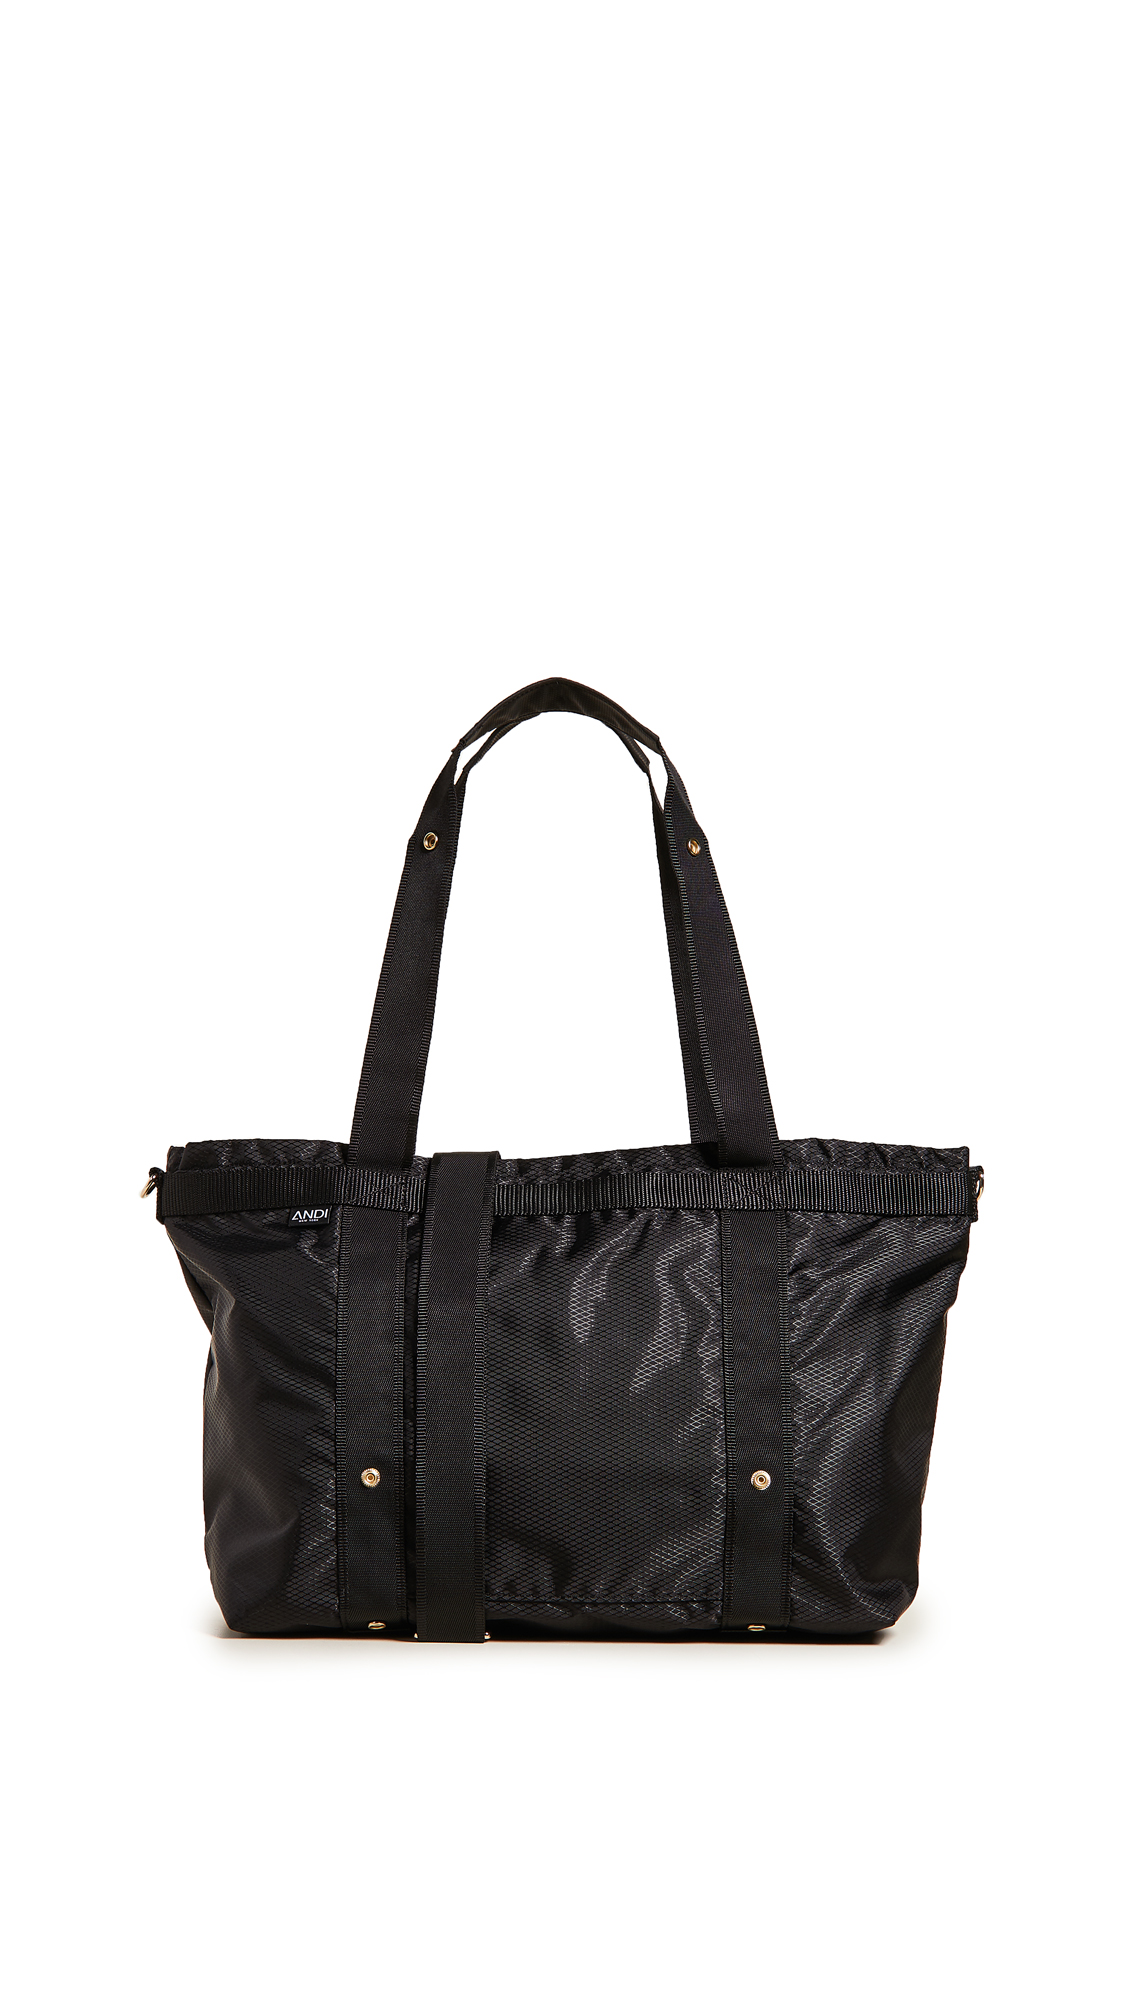 TOTE from Shopbop